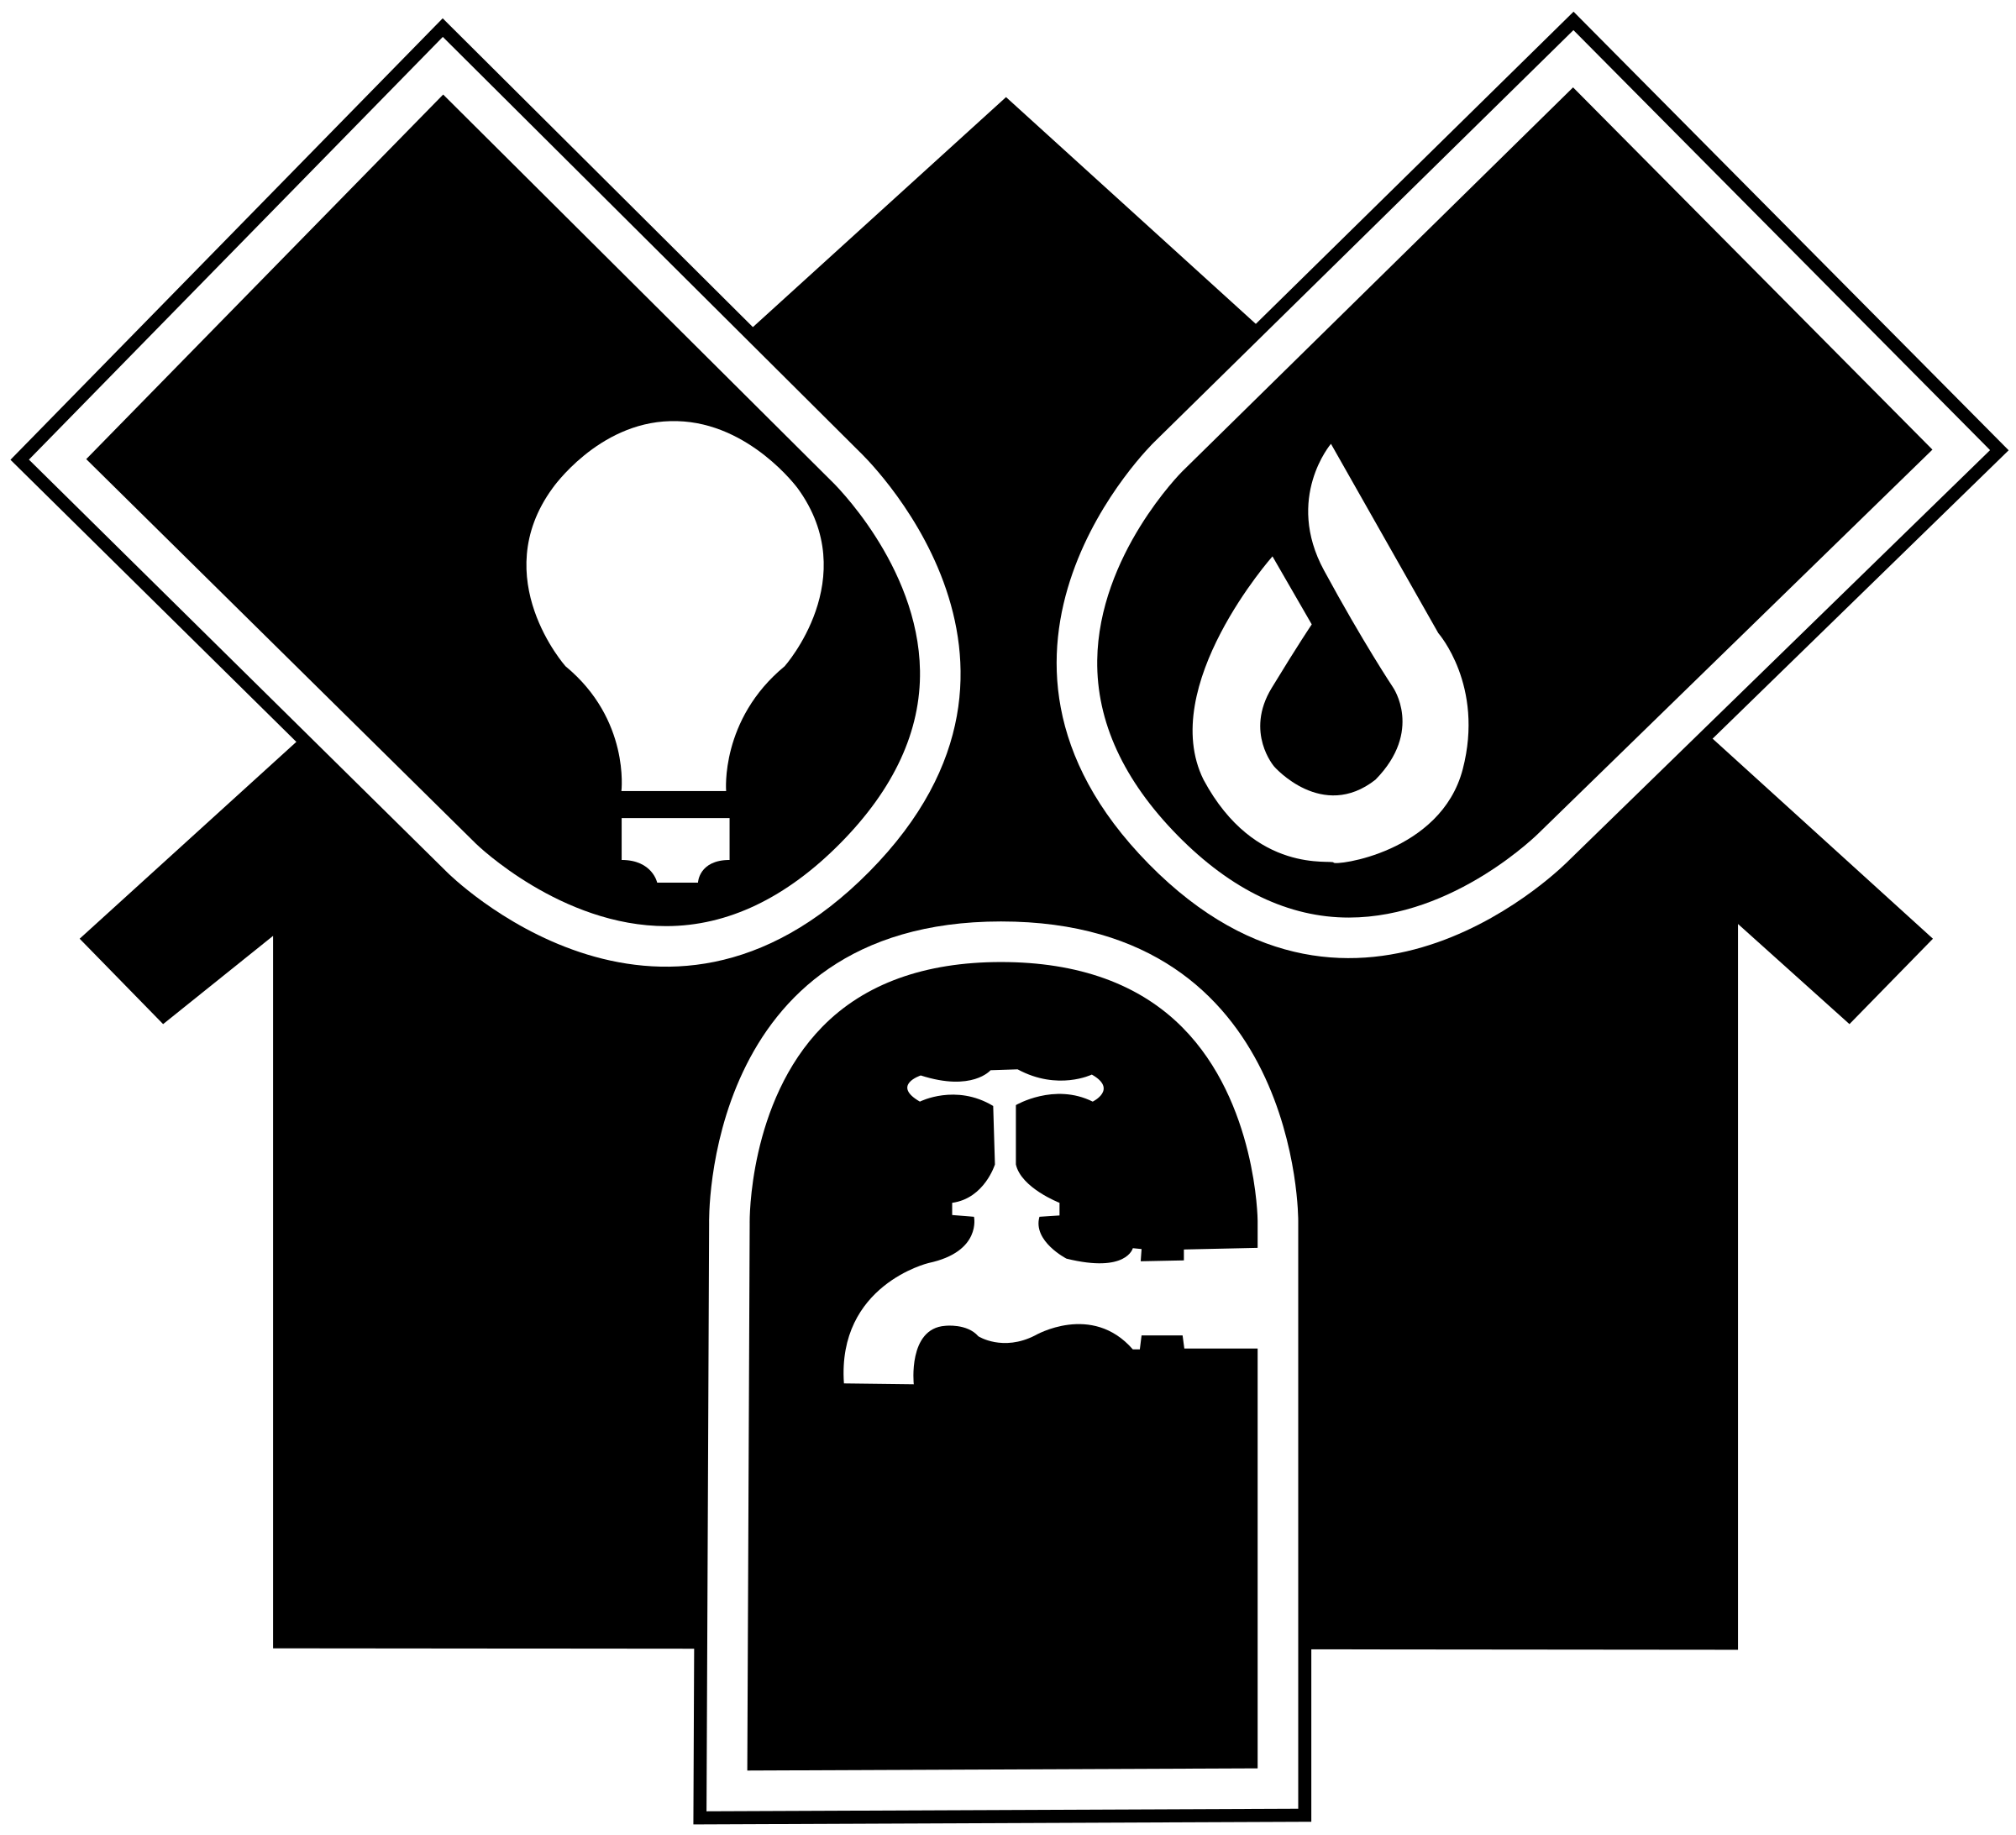 Electric clipart water electricity. Gas icons png free